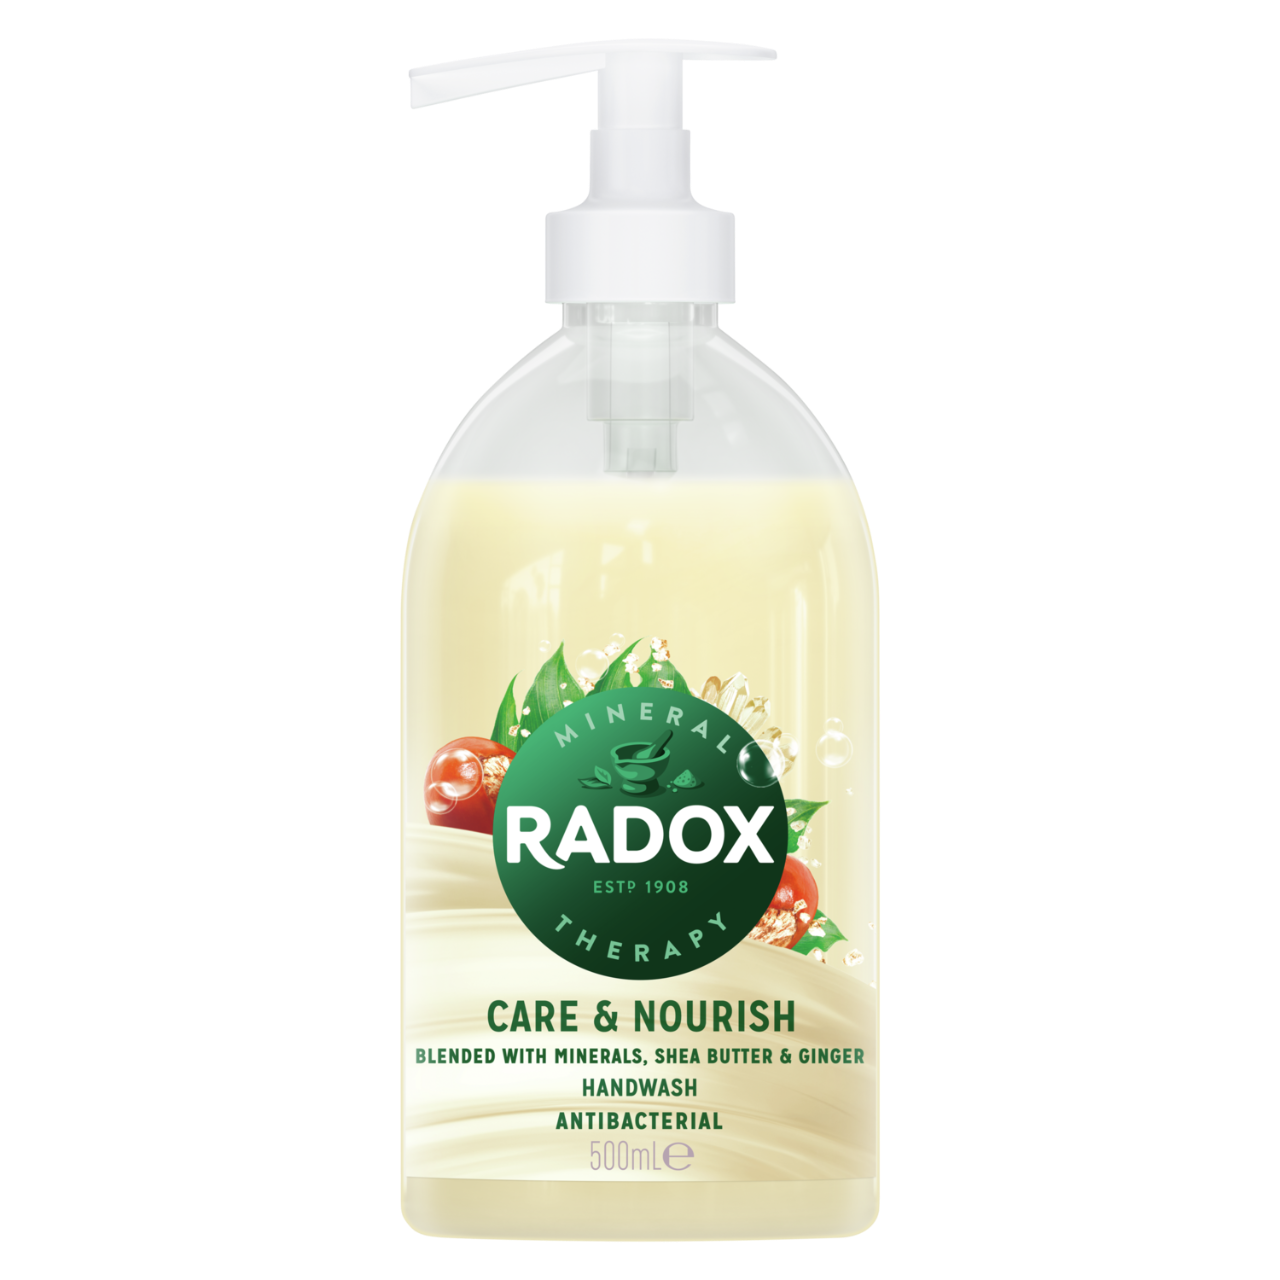 Radox Care + Nourish hard on germs, gentle on hands Antibacterial Handwash moisturising 500 ml